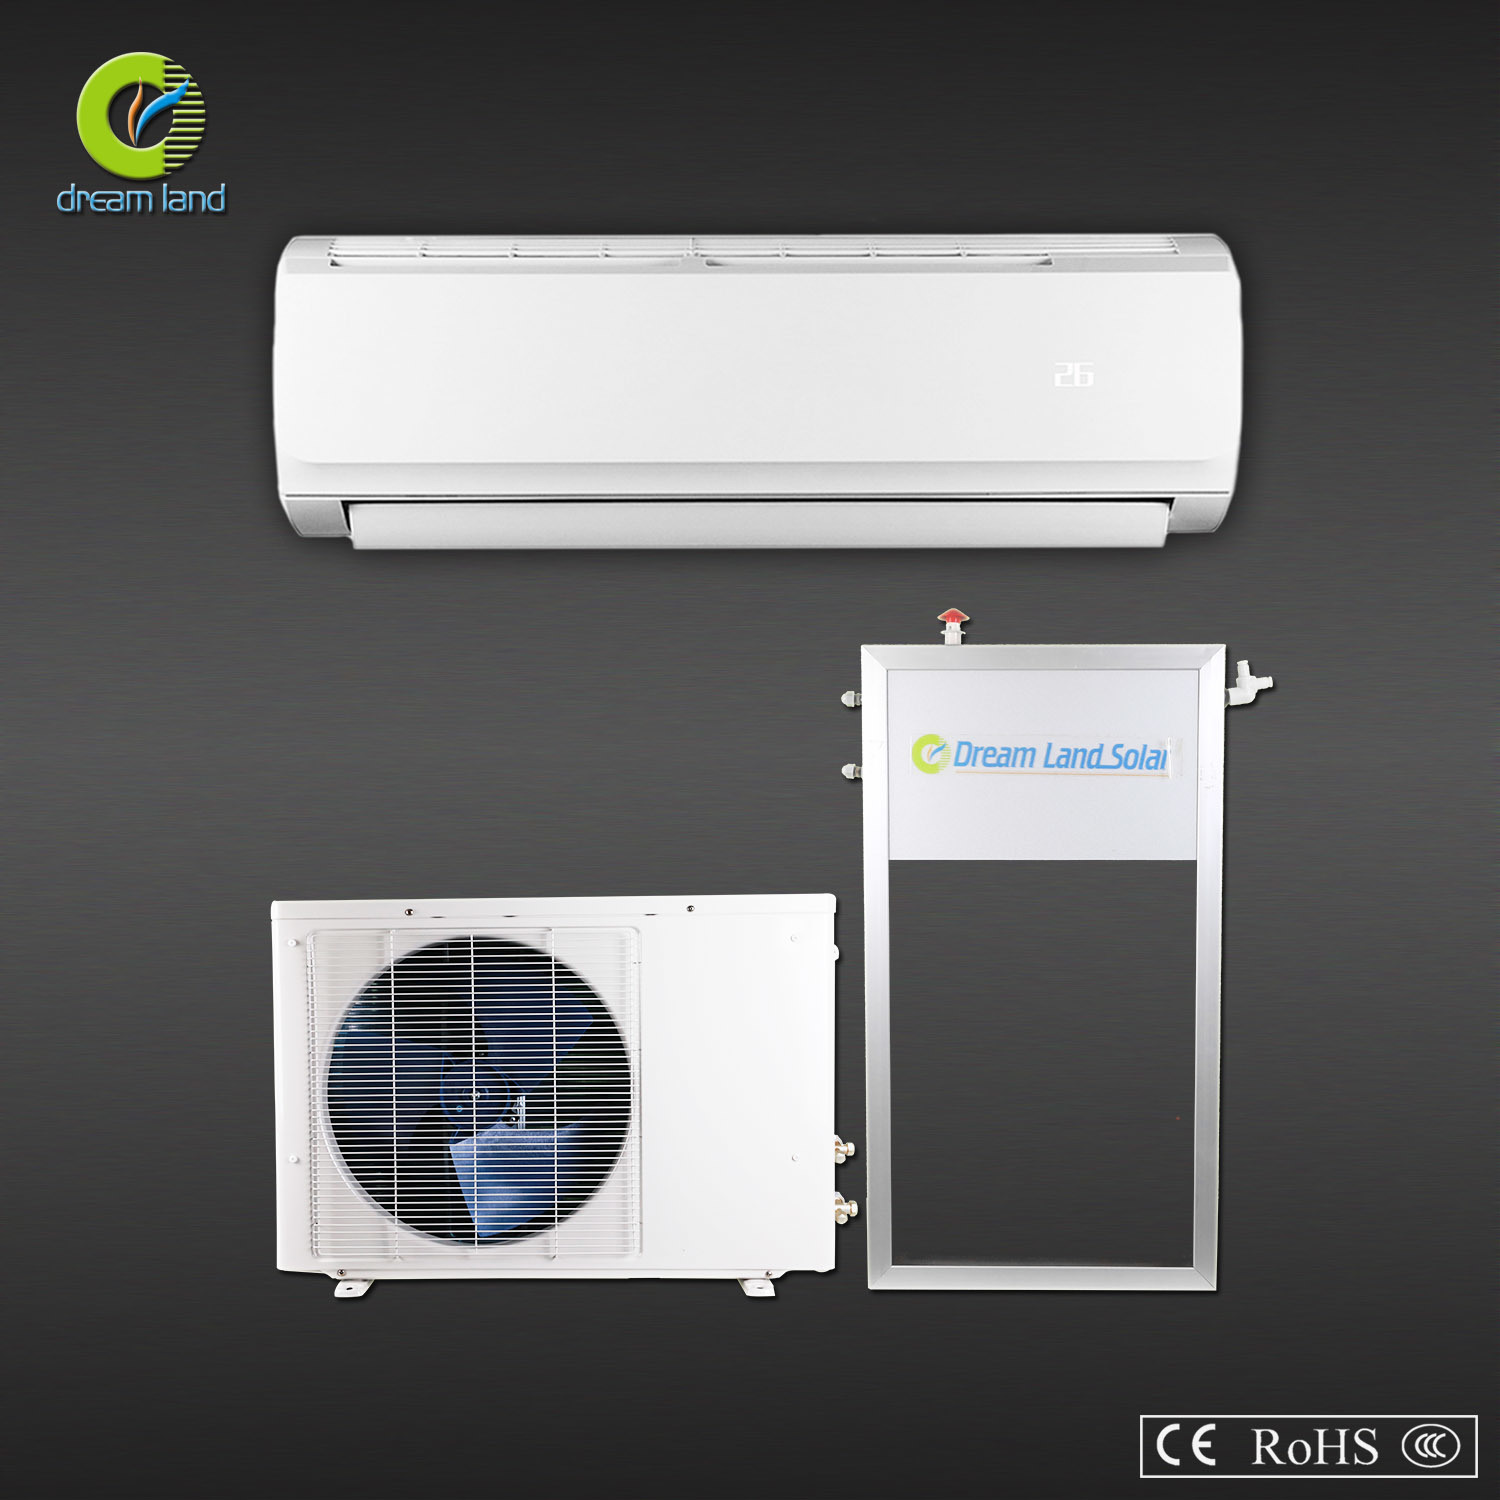 Flat Plate Type Wall-Mounted Solar Air Conditioner